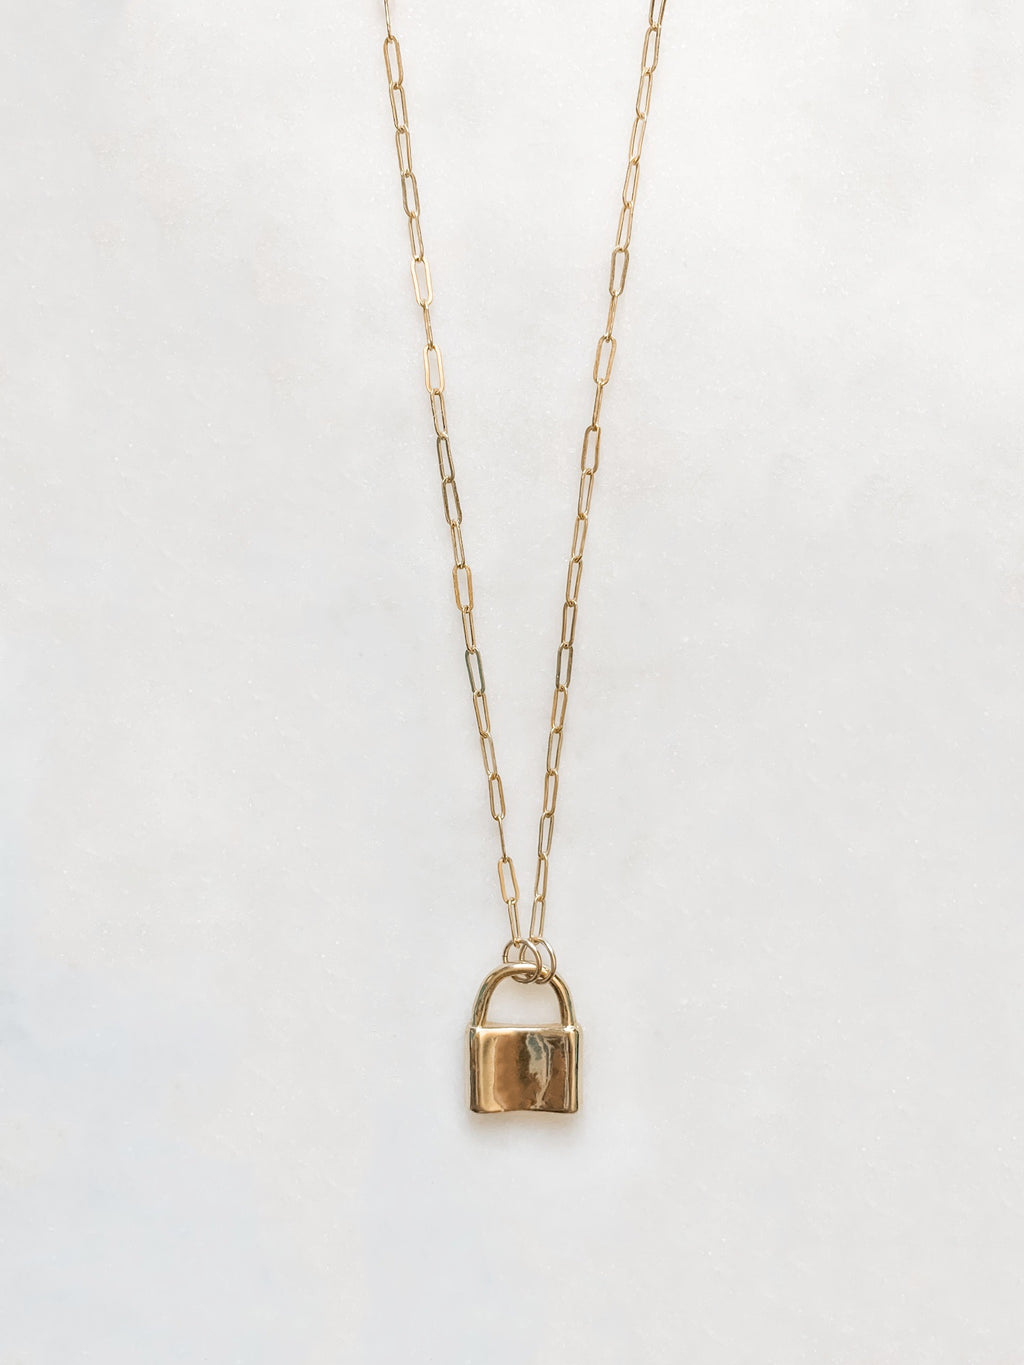 Mini Paperclip and Lock Necklace - The Pretty Eclectic